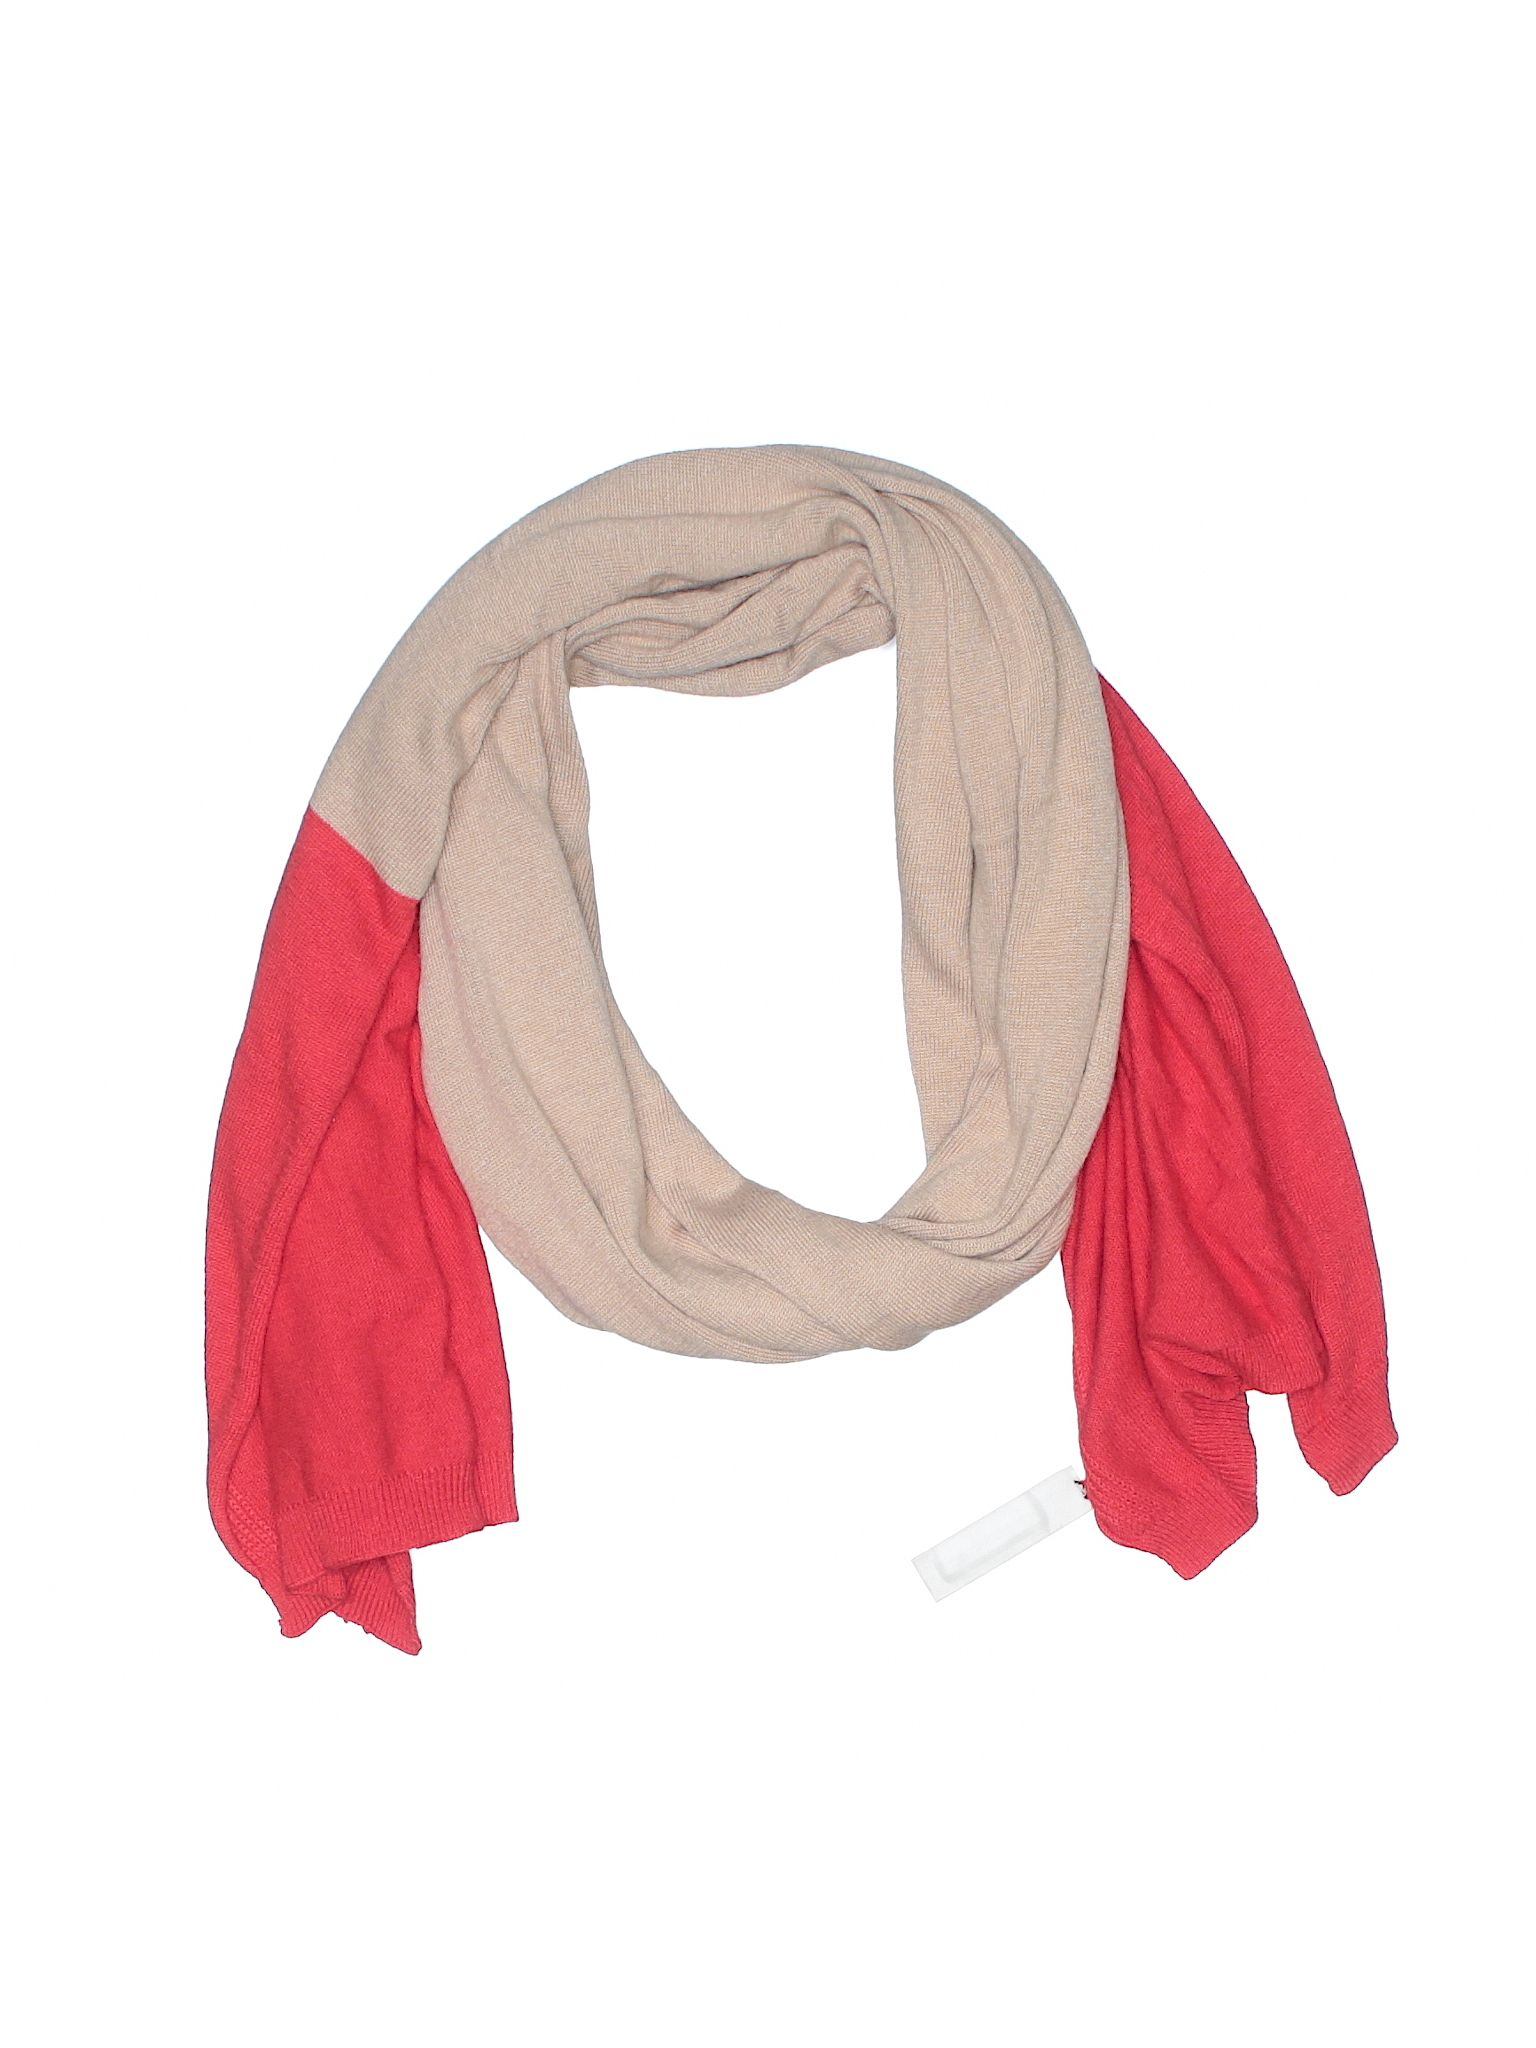 Ann Taylor Scarf Size 000 Red Womens Accessories  $1699